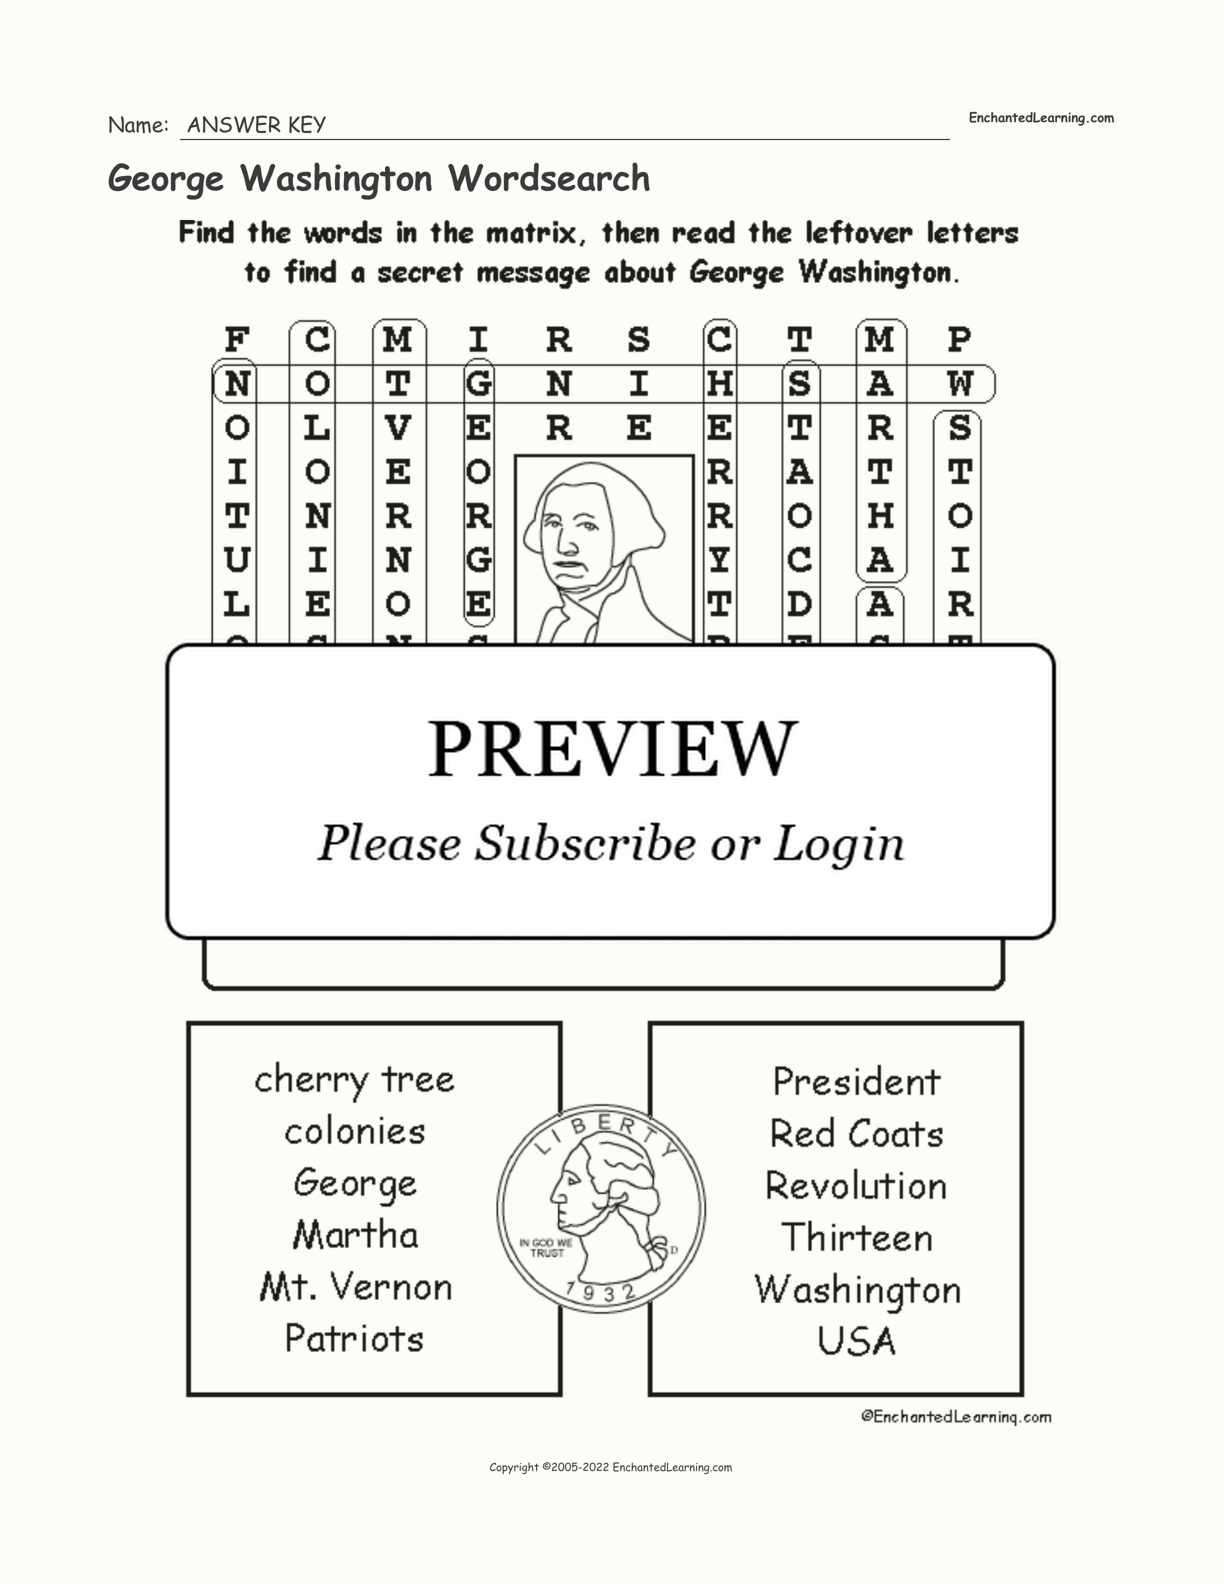 George Washington Wordsearch interactive worksheet page 2